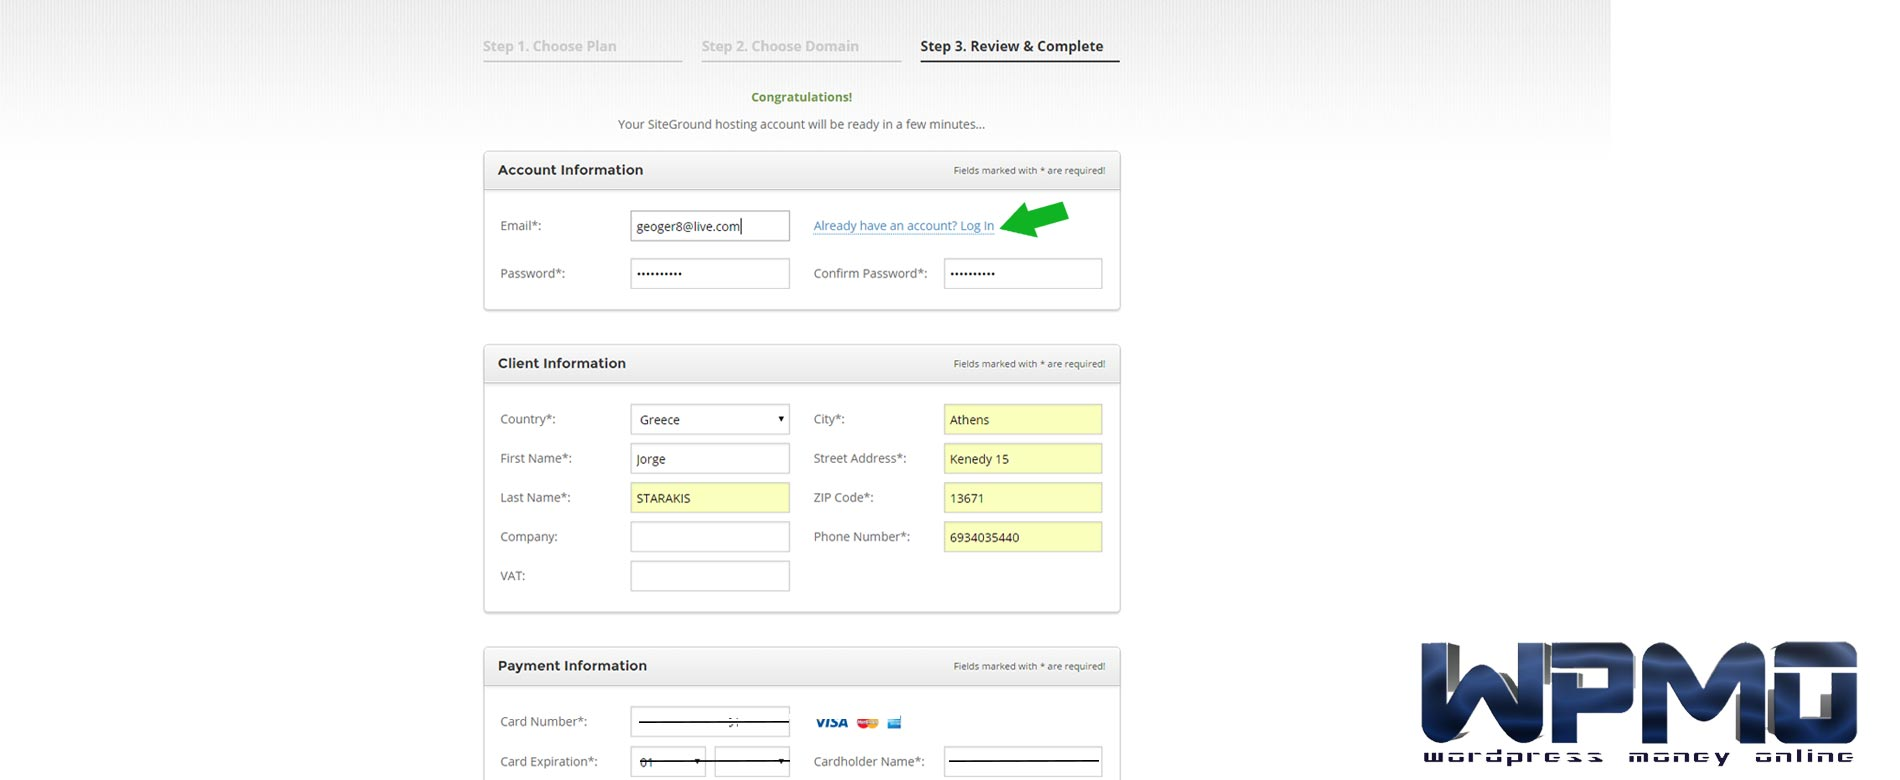 Fill-in-your-information-and-payment-details - Create SiteGround Hosting Account